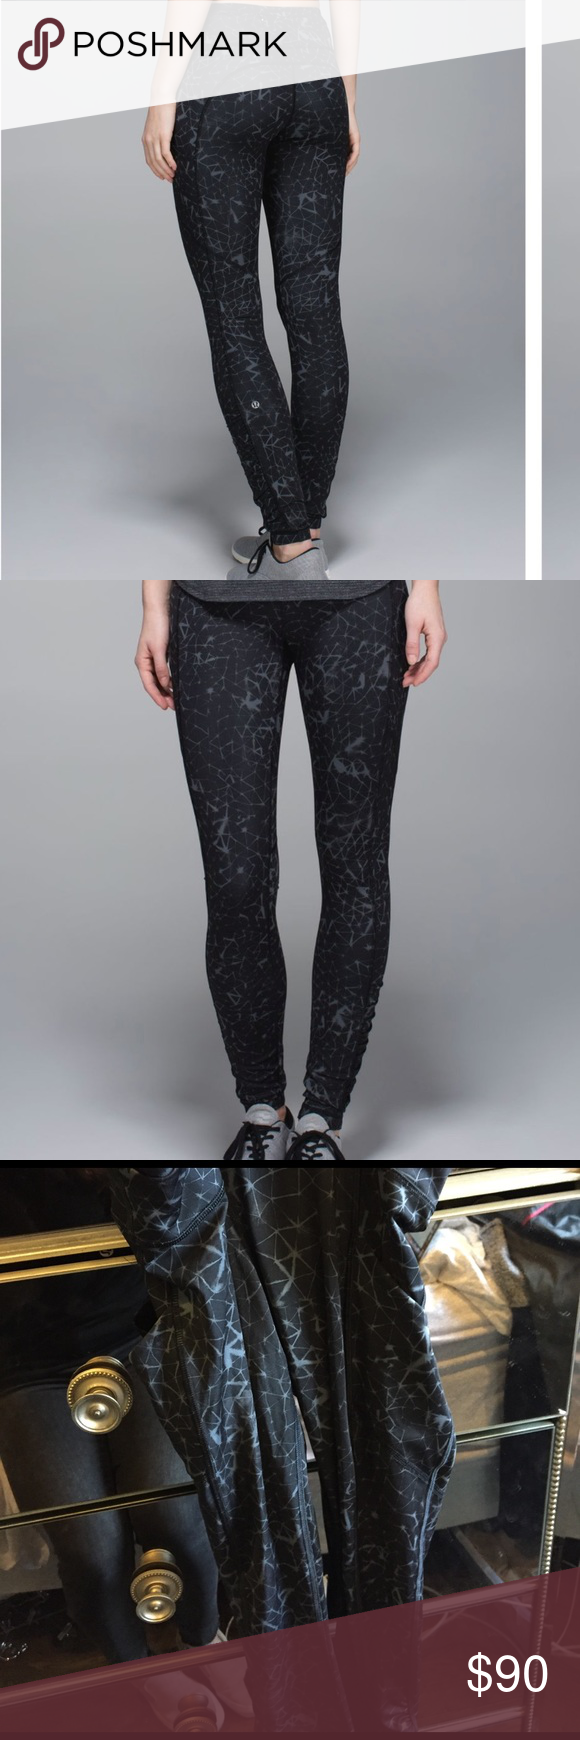 06d45f7fb Lululemon Speed Tight III - Luxtreme Lululemon speed tight III in star  crushed coal black. Sold out pattern! lululemon athletica Pants Leggings